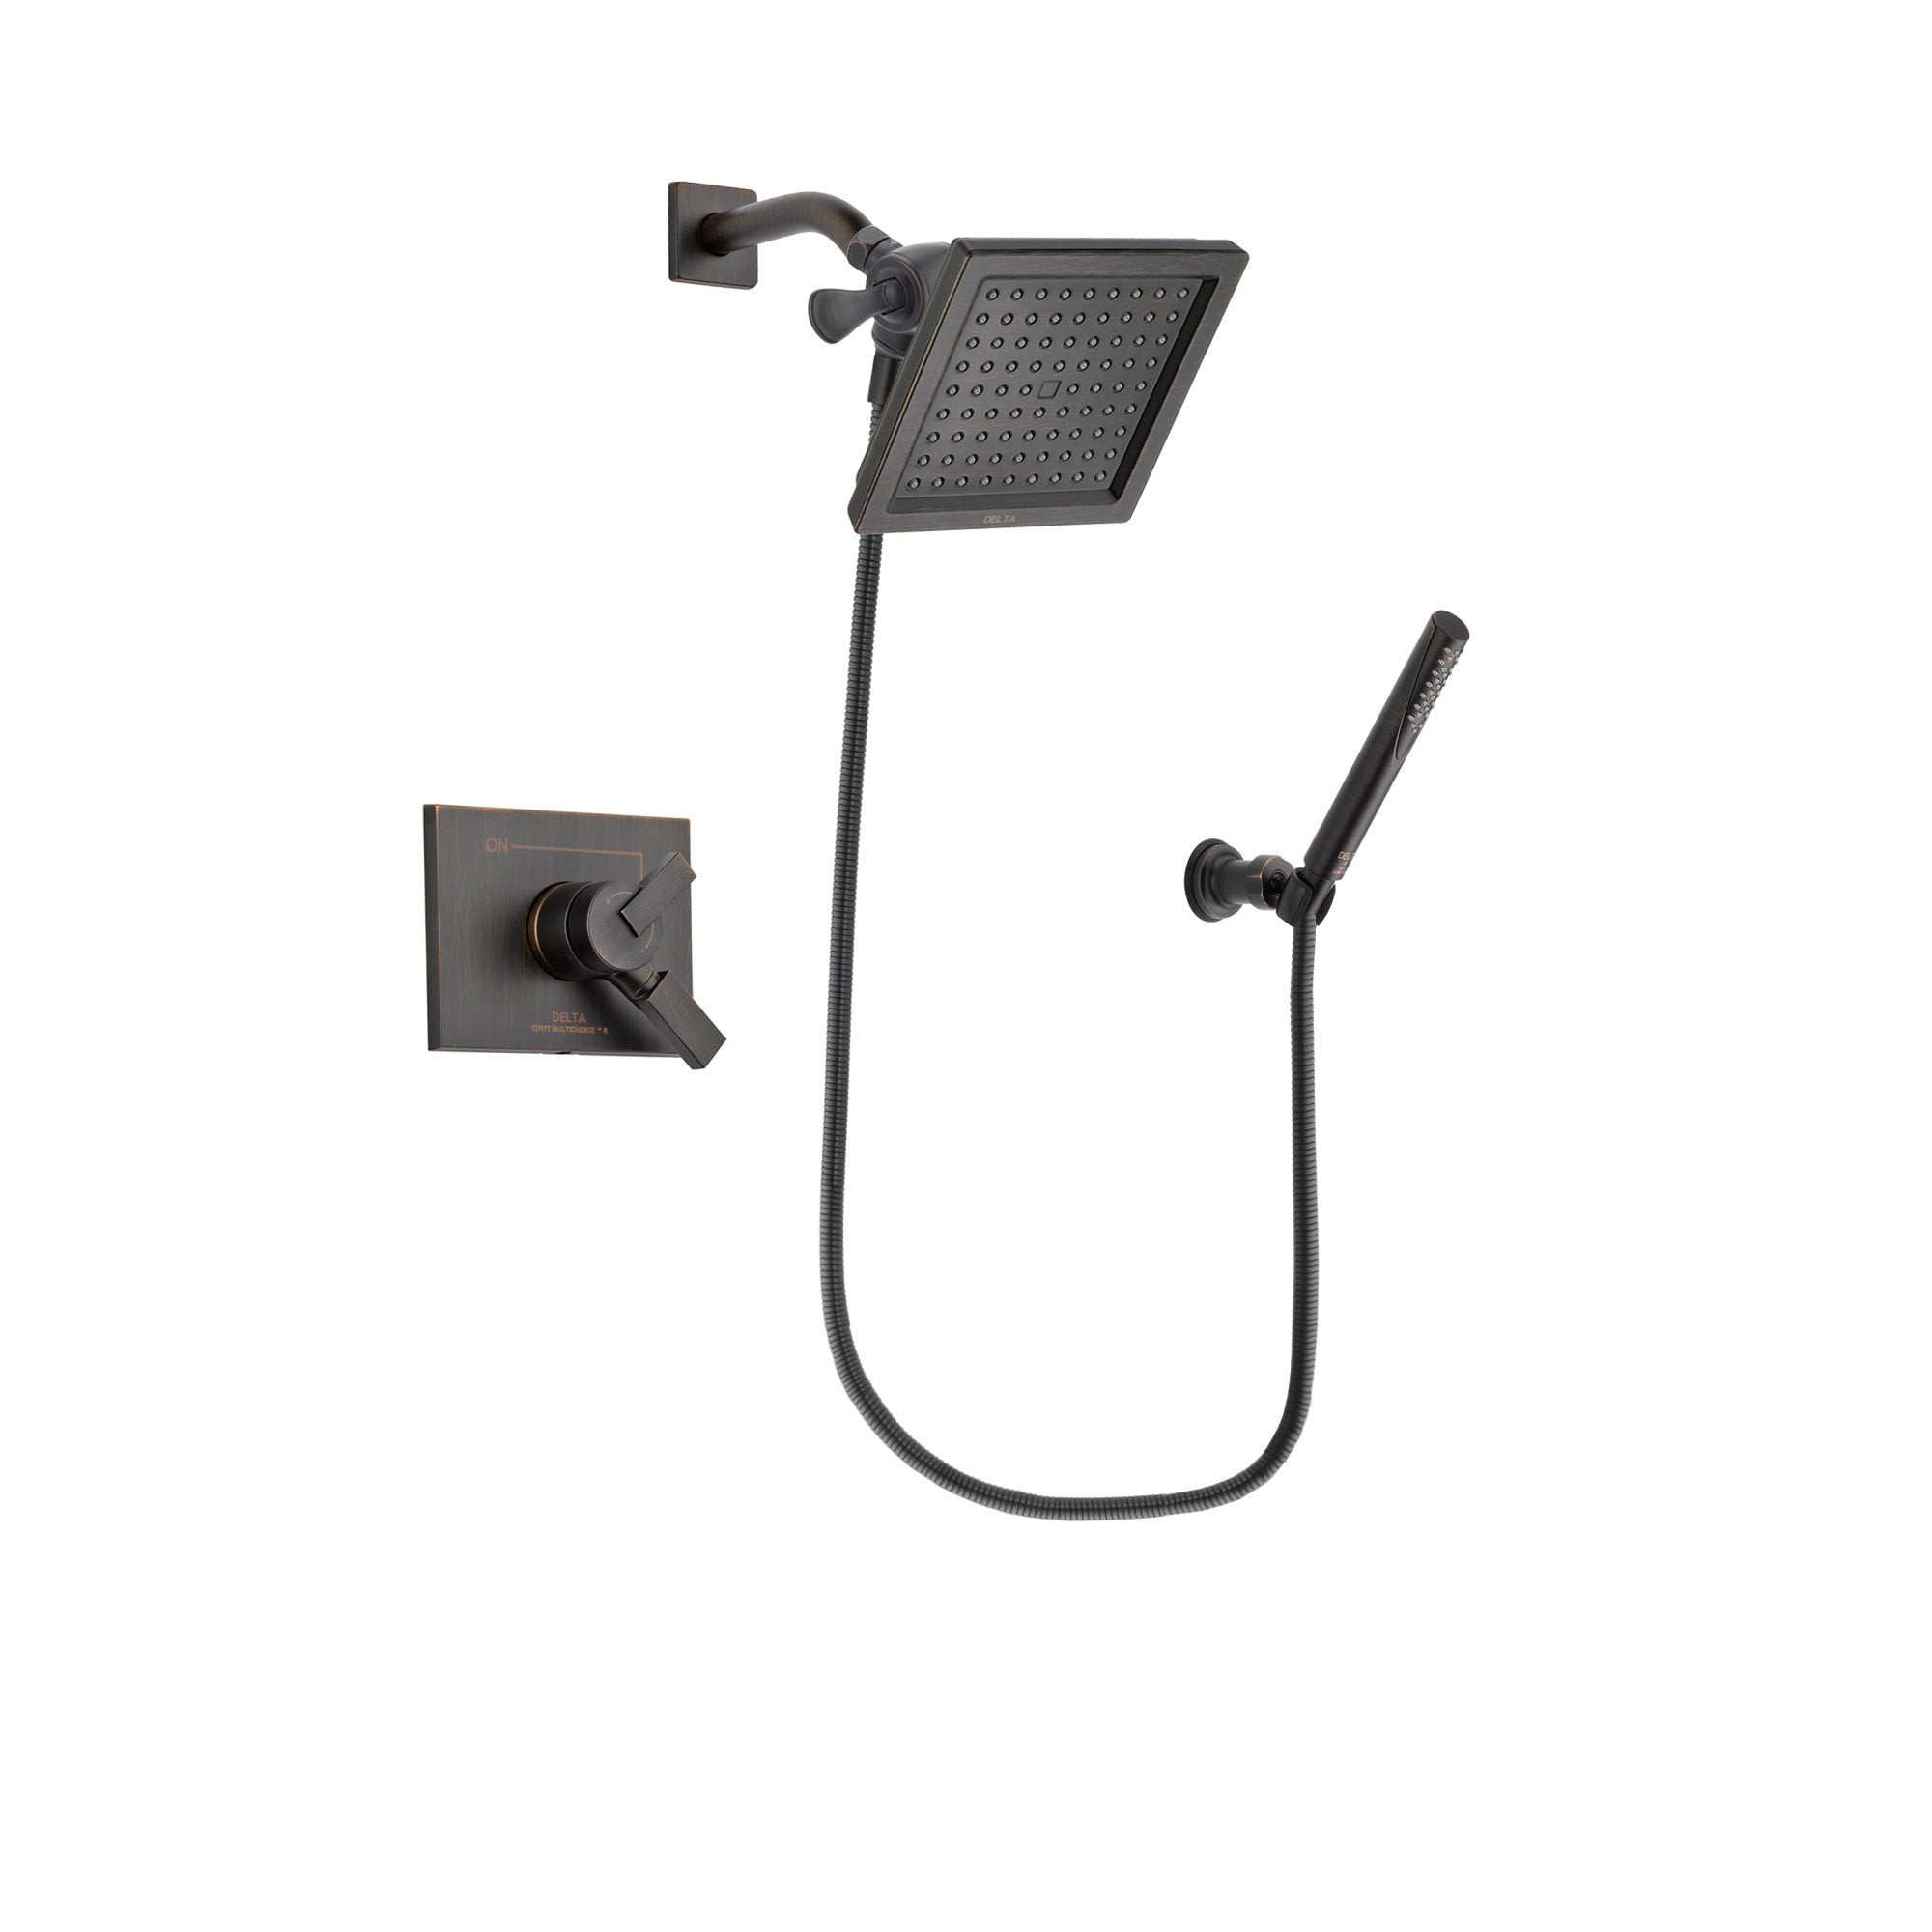 Delta Vero Venetian Bronze Shower Faucet System Package with Hand Spray DSP3304V